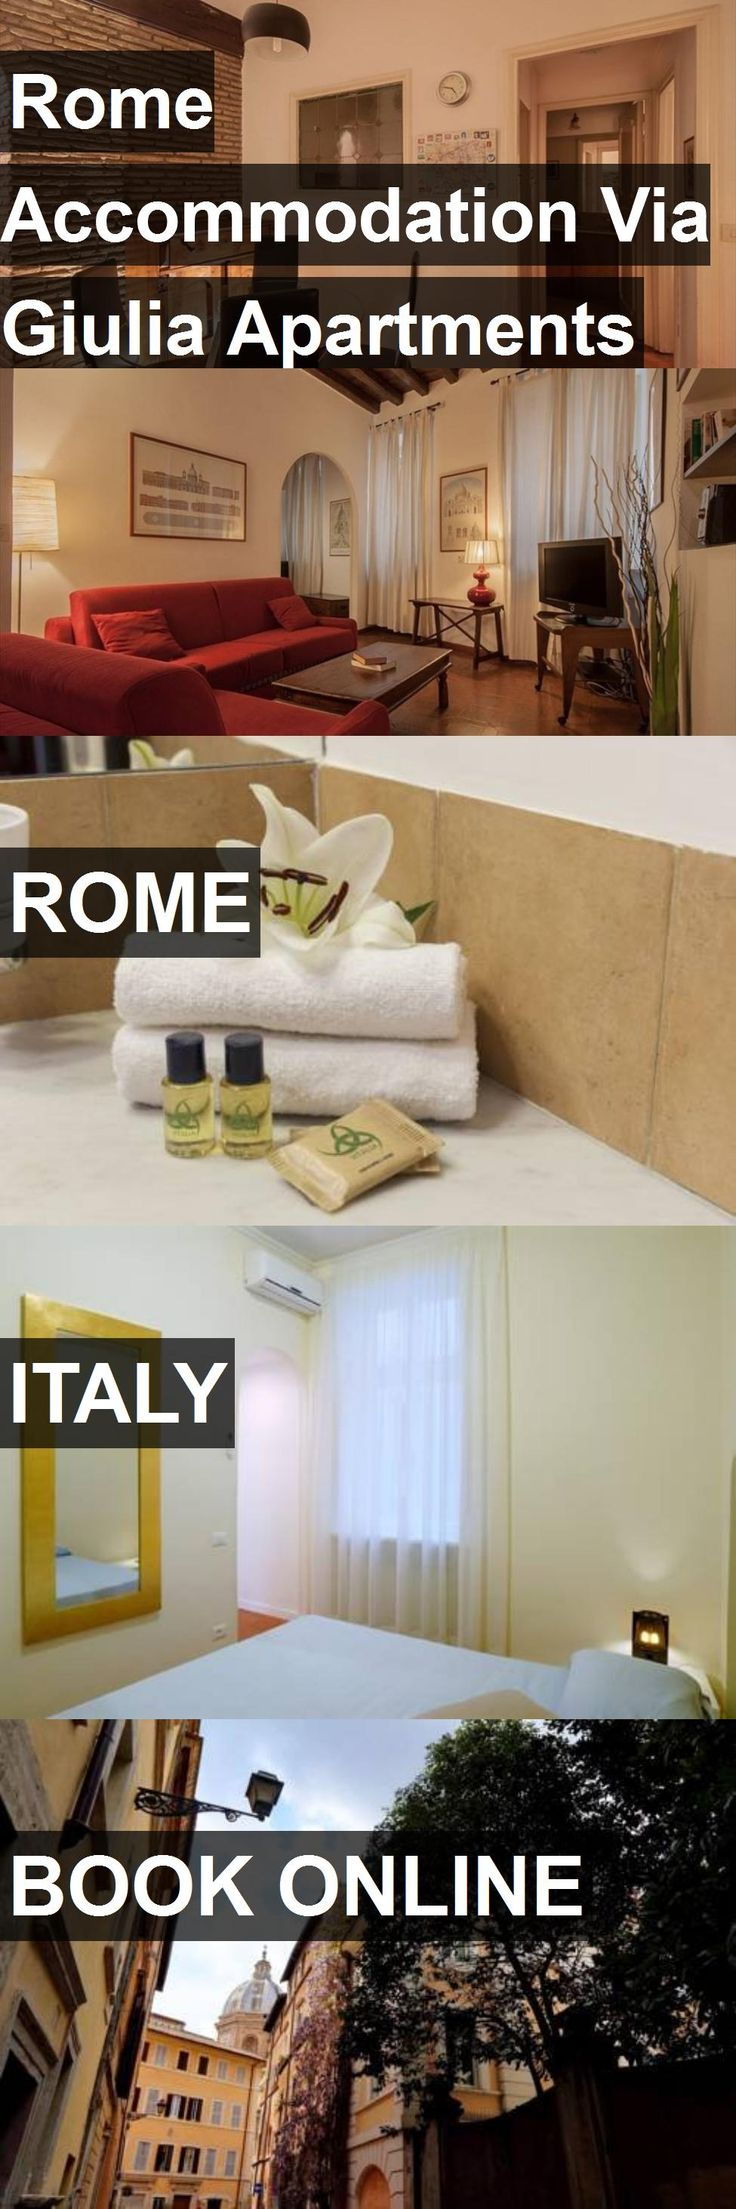 Rome Accommodation Via Giulia Apartments in Rome, Italy. For more information, photos, reviews and best prices please follow the link. #Italy #Rome #travel #vacation #apartment